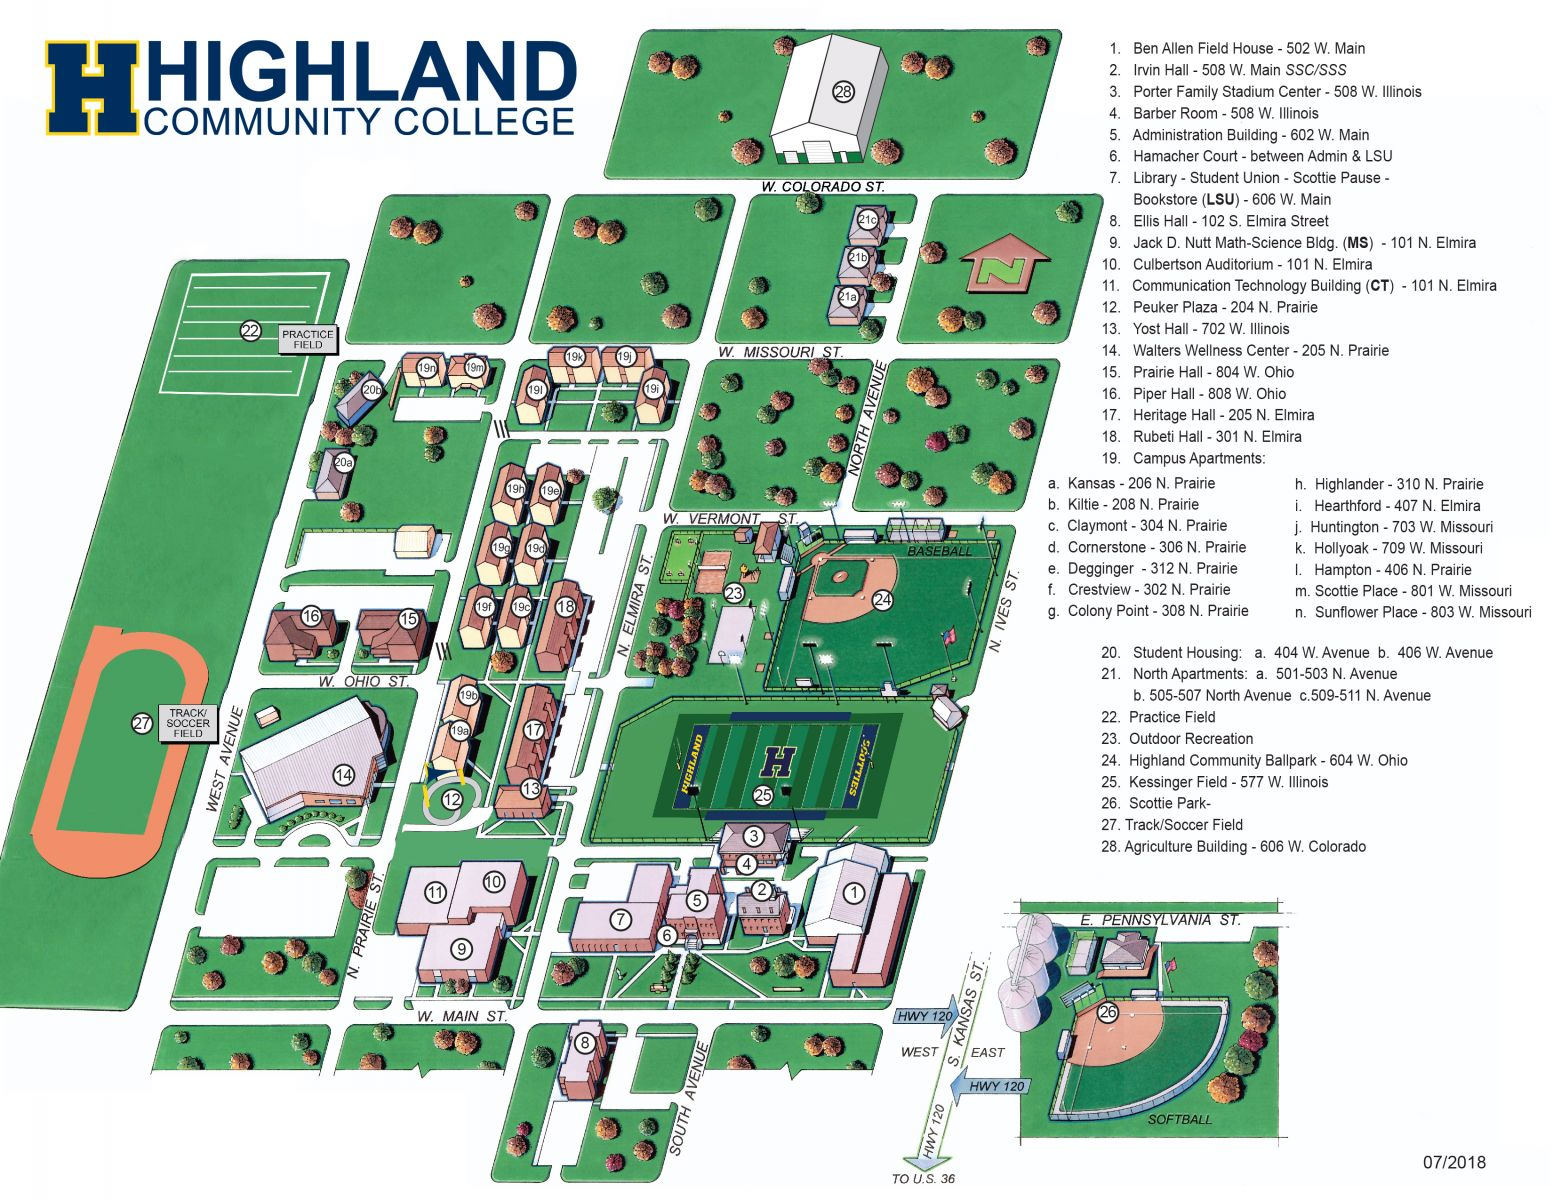 Illinois College Campus Map.Campus Map Highland Community College My Hcc